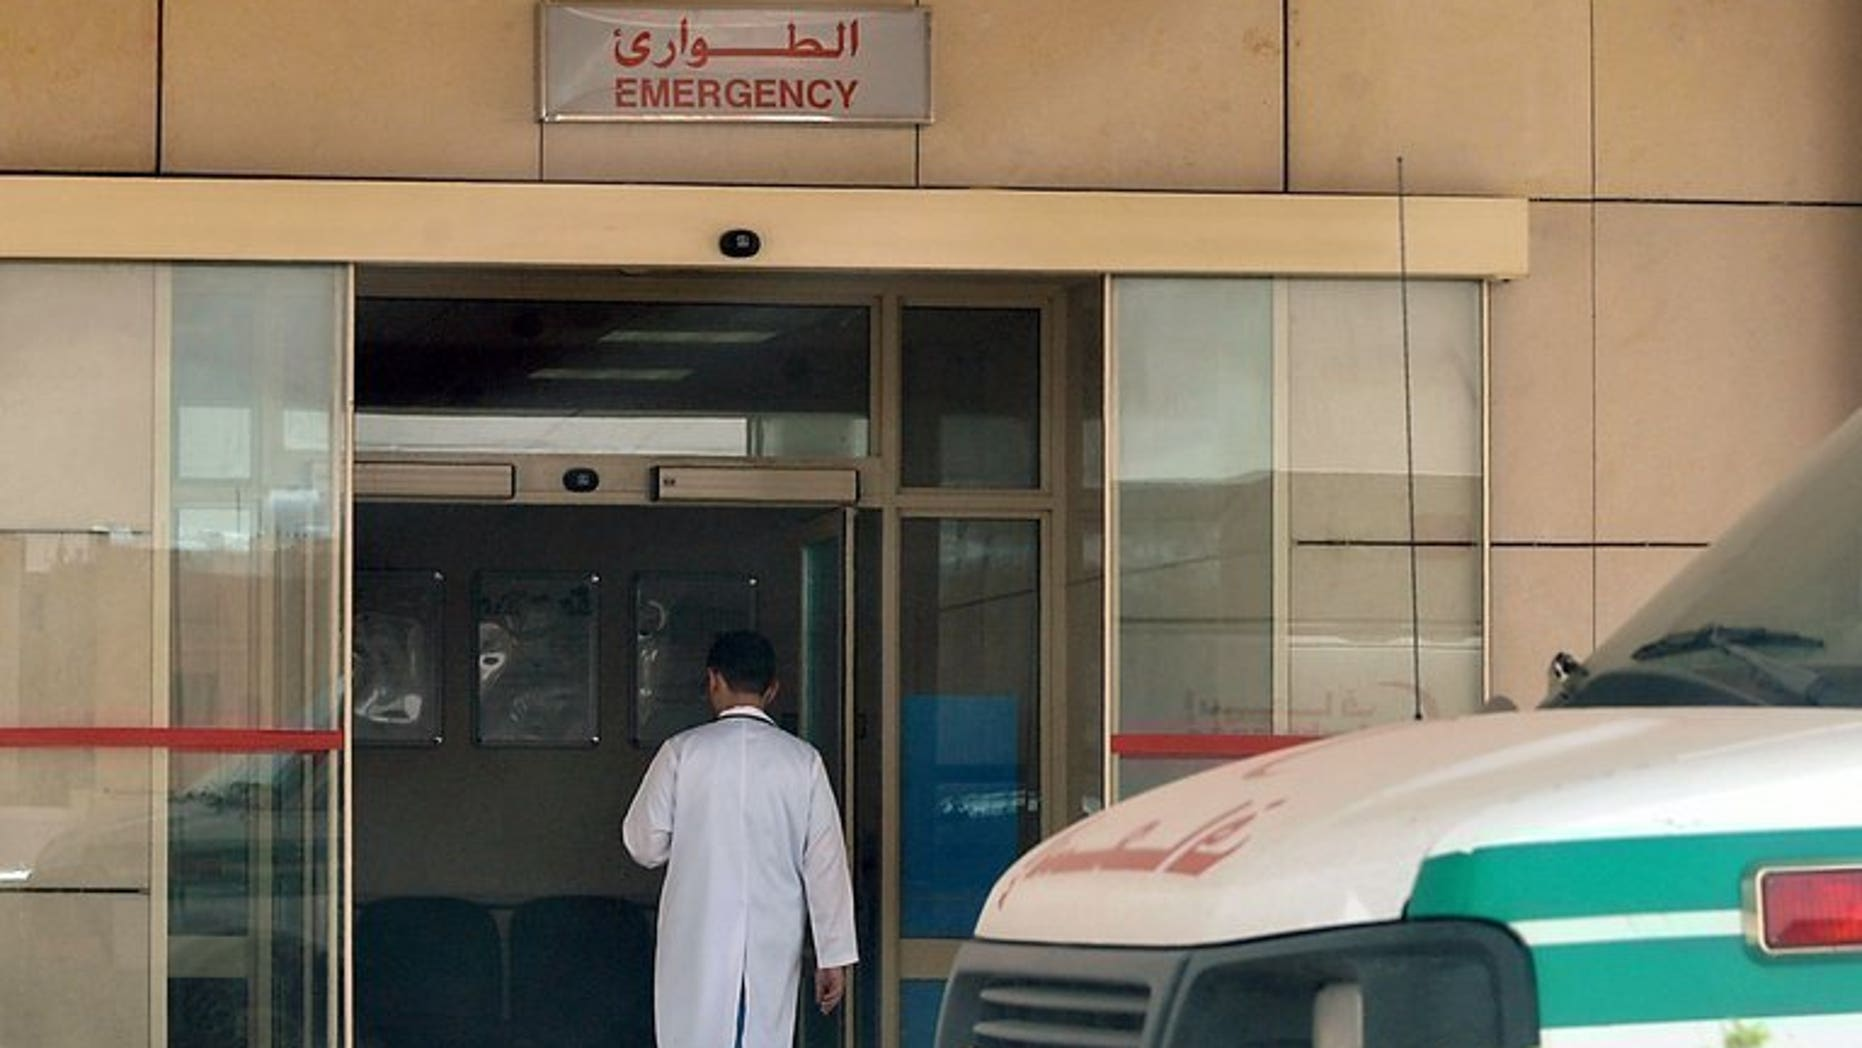 A local hospital in the center of the Saudi capital Riyadh is pictured on May 13, 2013. An elderly Saudi man has died from the MERS virus, bringing the kingdom's death toll from the SARS-like infection to 33, the health ministry said.